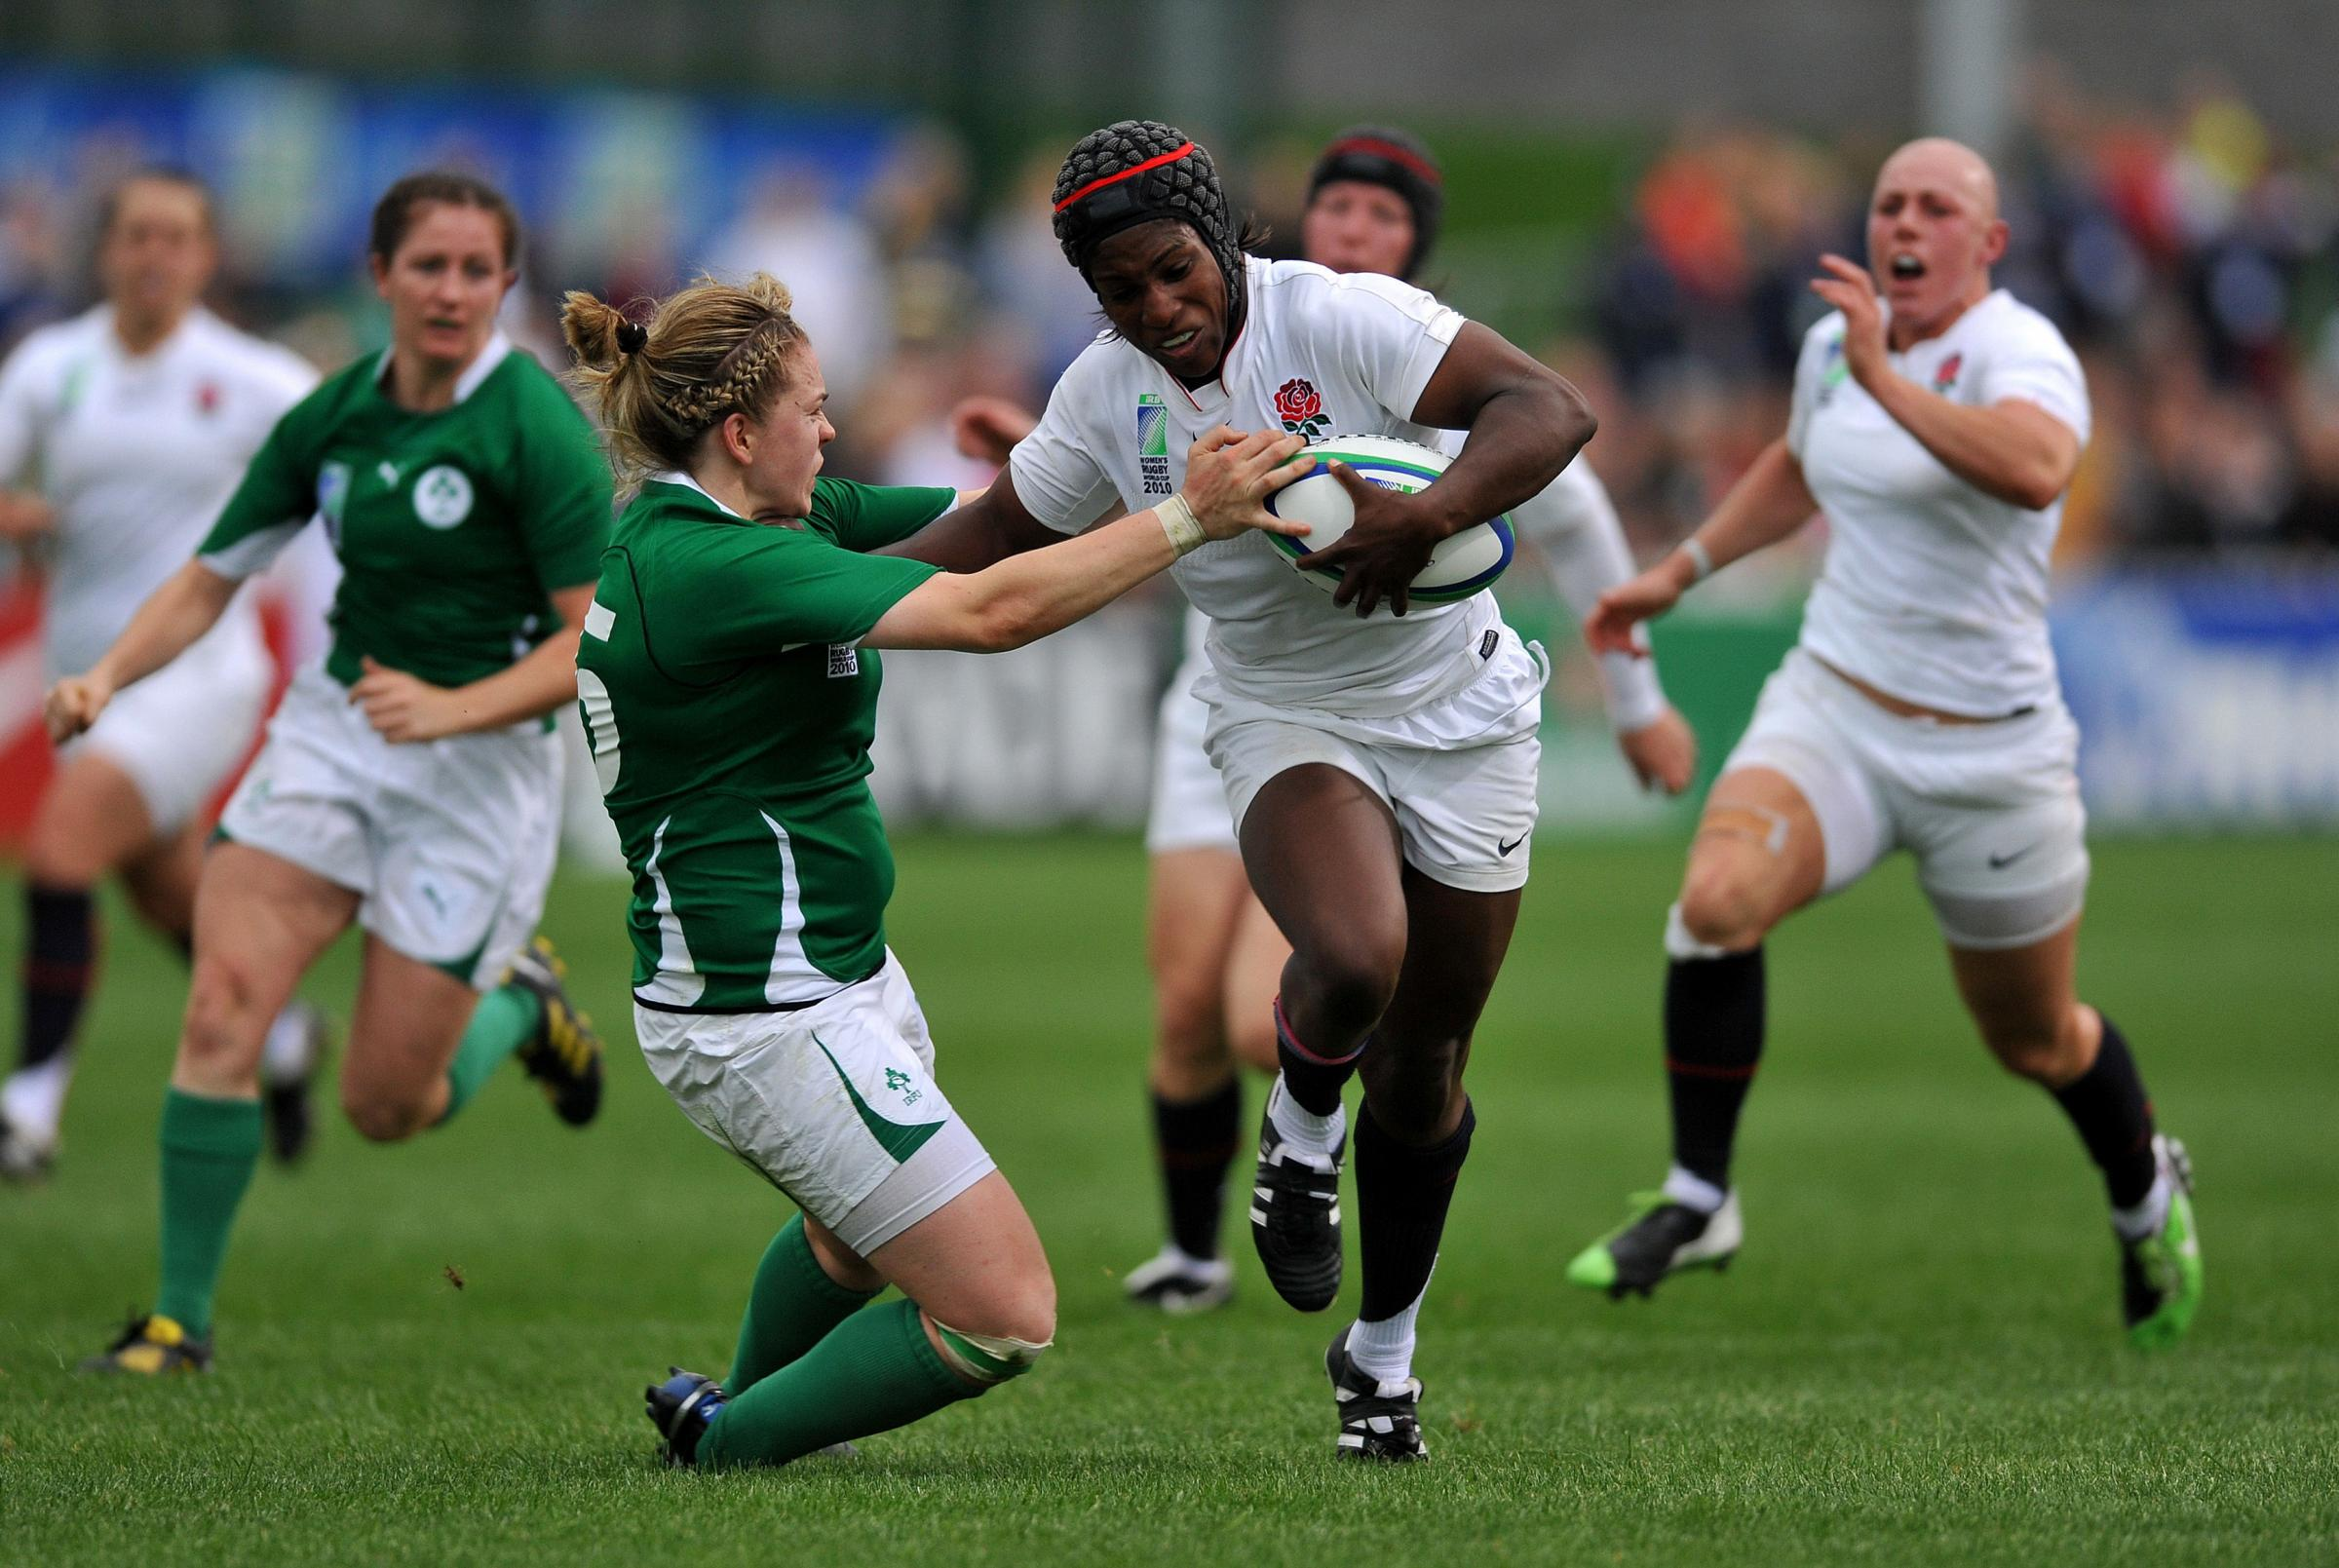 Rugby role model - Maggie Alphonsi playing for England against Ireland in the 2010 IRB Women's World Cup. Photo: Andrew Matthews/PA Photos.